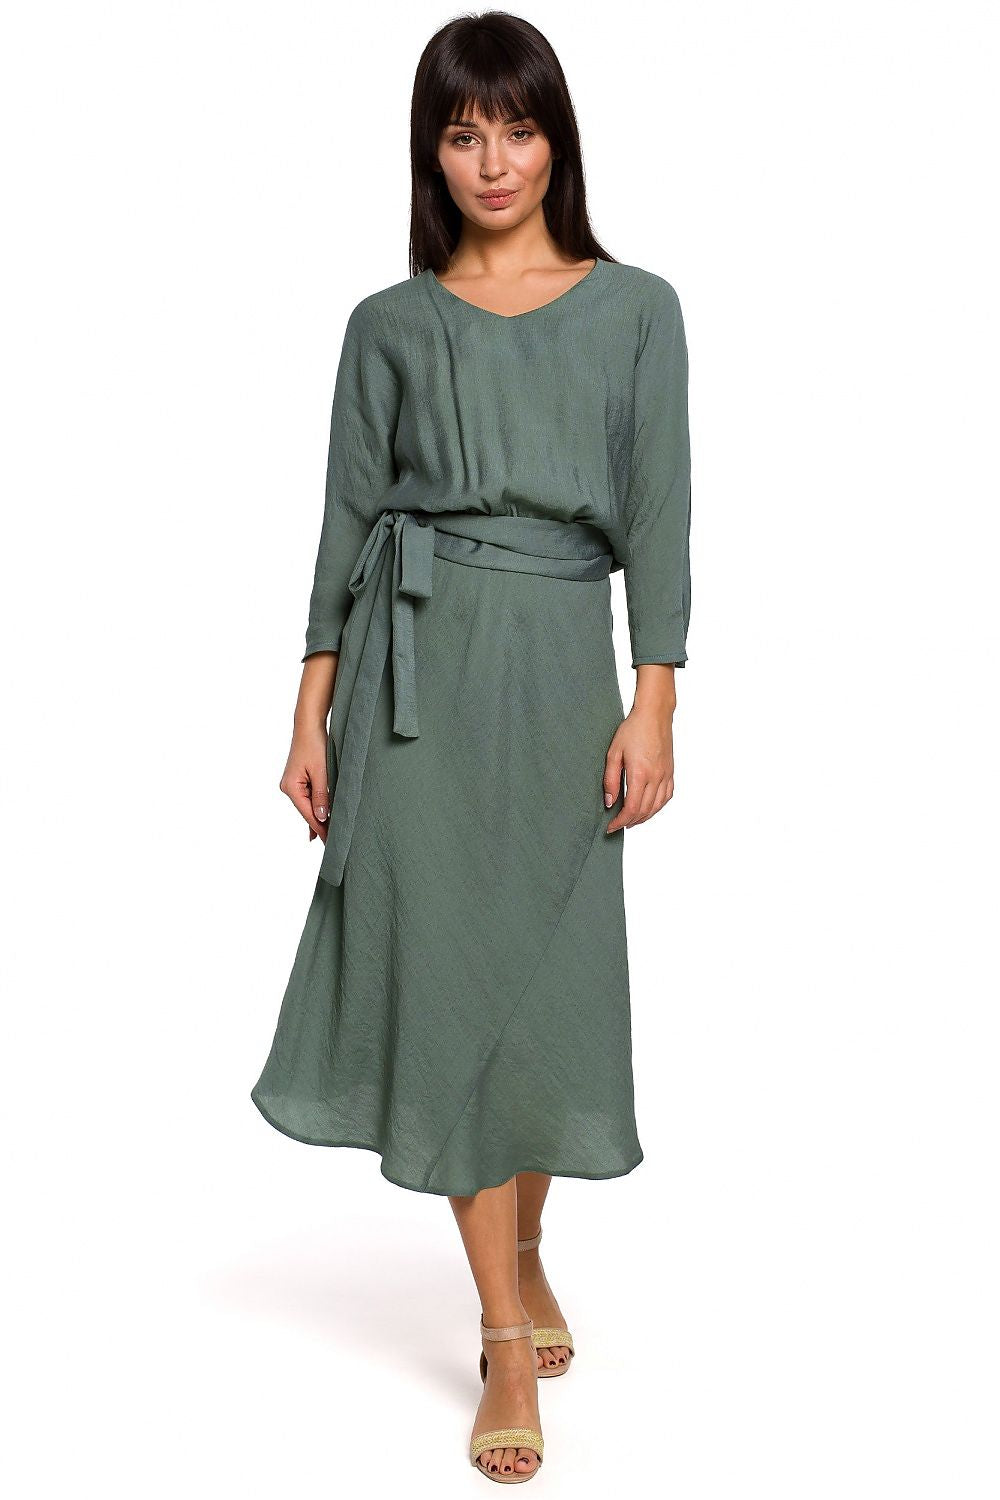 Green Midi Belted Dress 141459